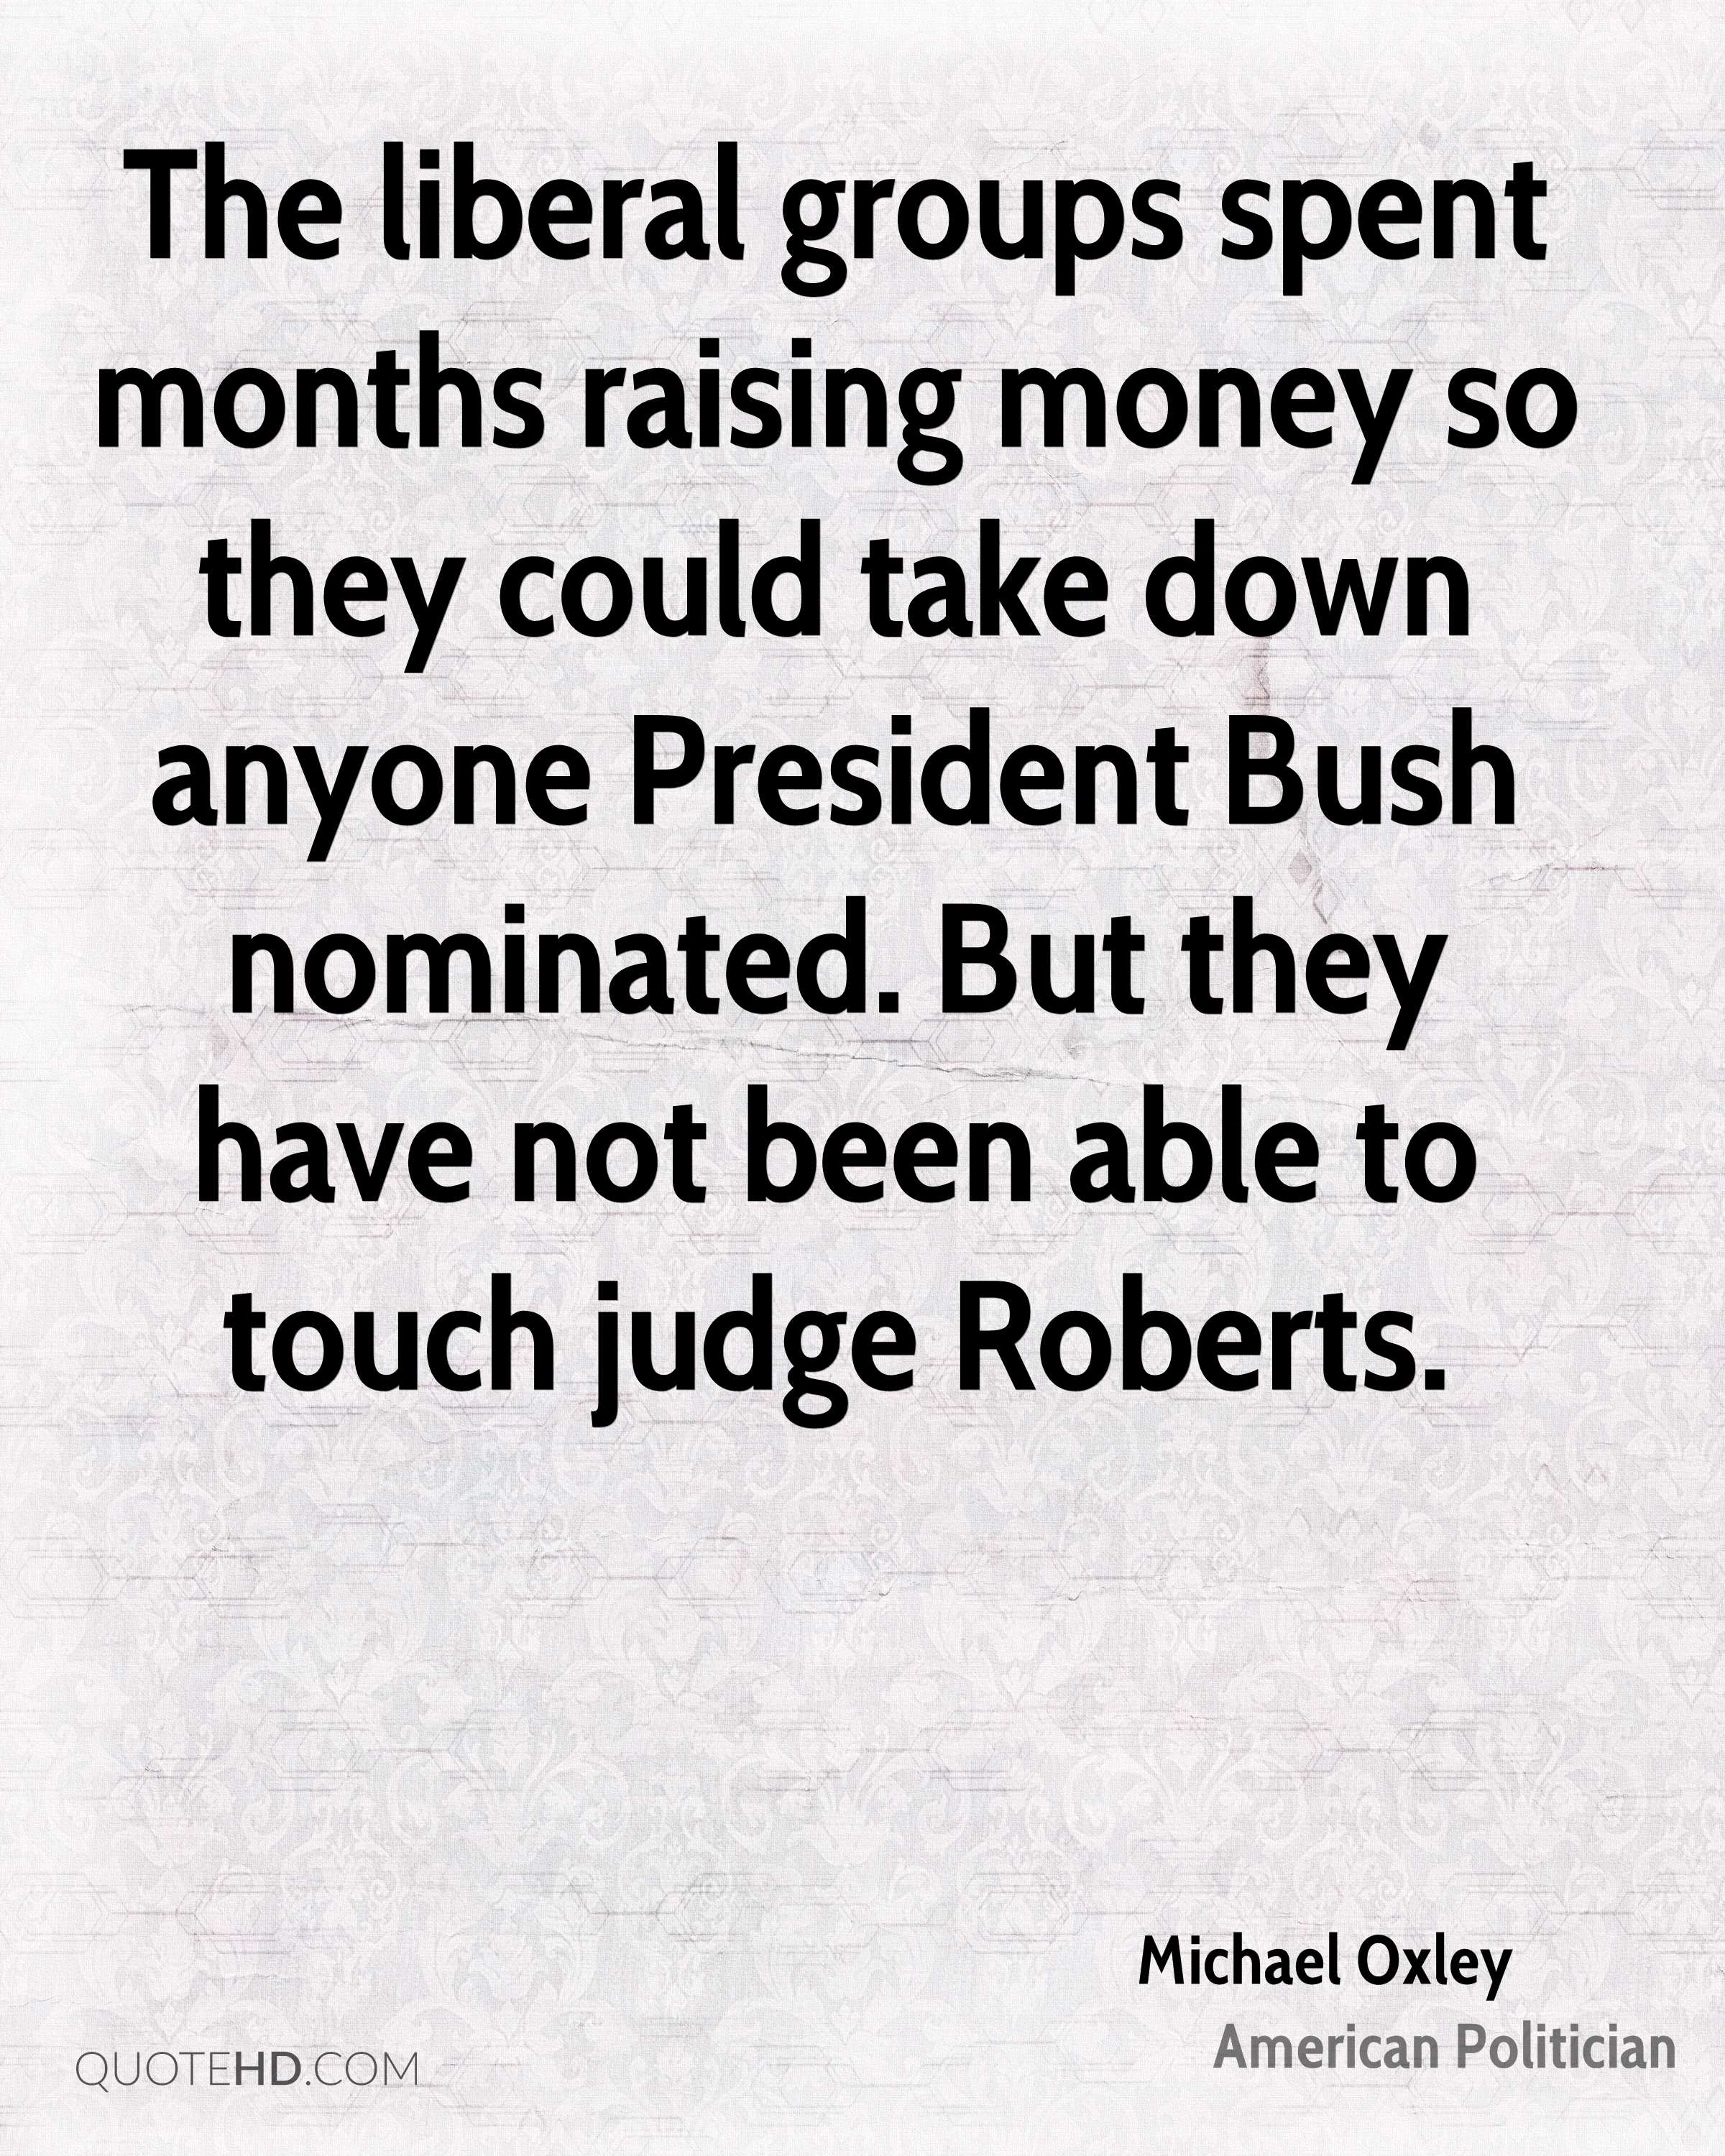 The liberal groups spent months raising money so they could take down anyone President Bush nominated. But they have not been able to touch judge Roberts.